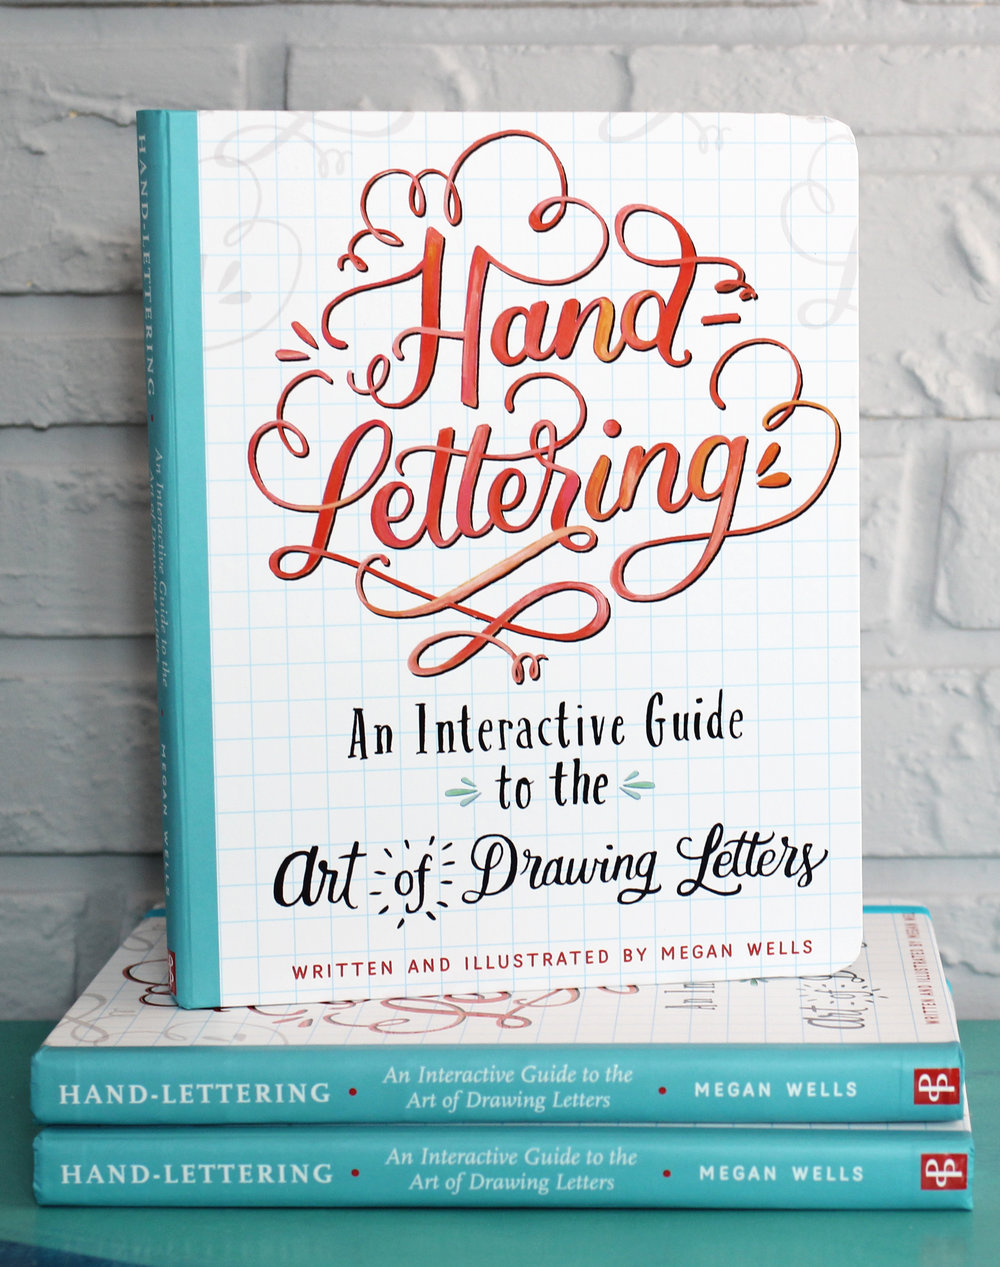 Hand Lettering Book - Makewells copy 2.jpg